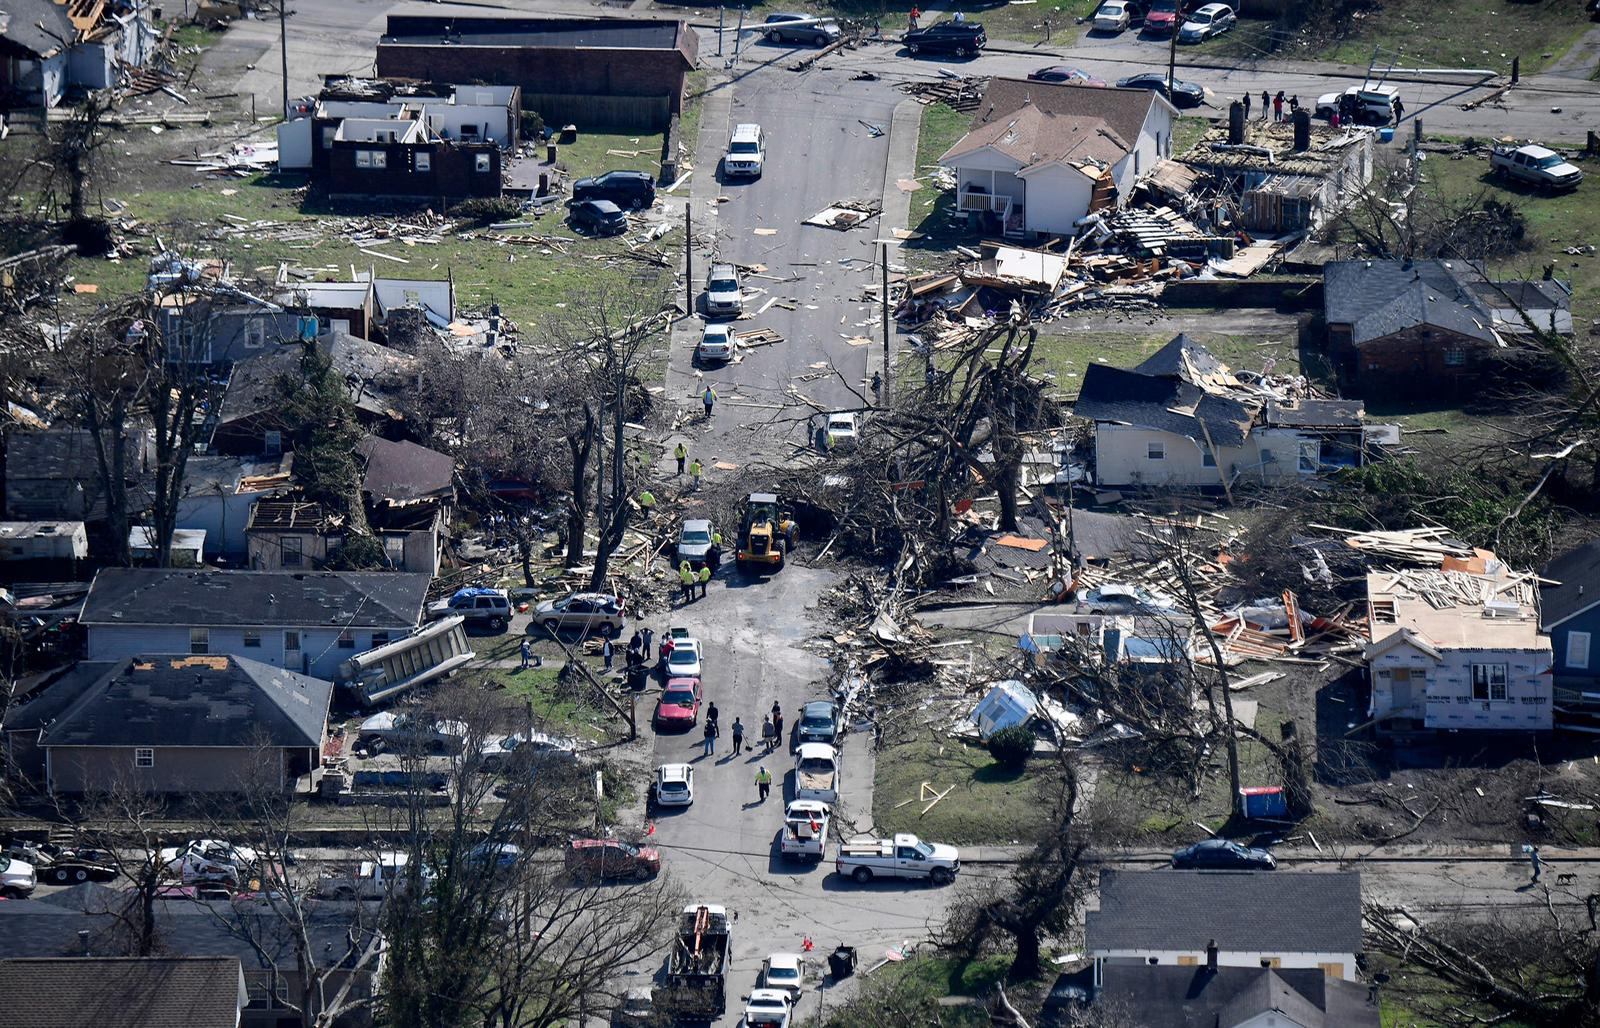 Tennesse needs your help. Please support the victims of the recent tornato in Nashville